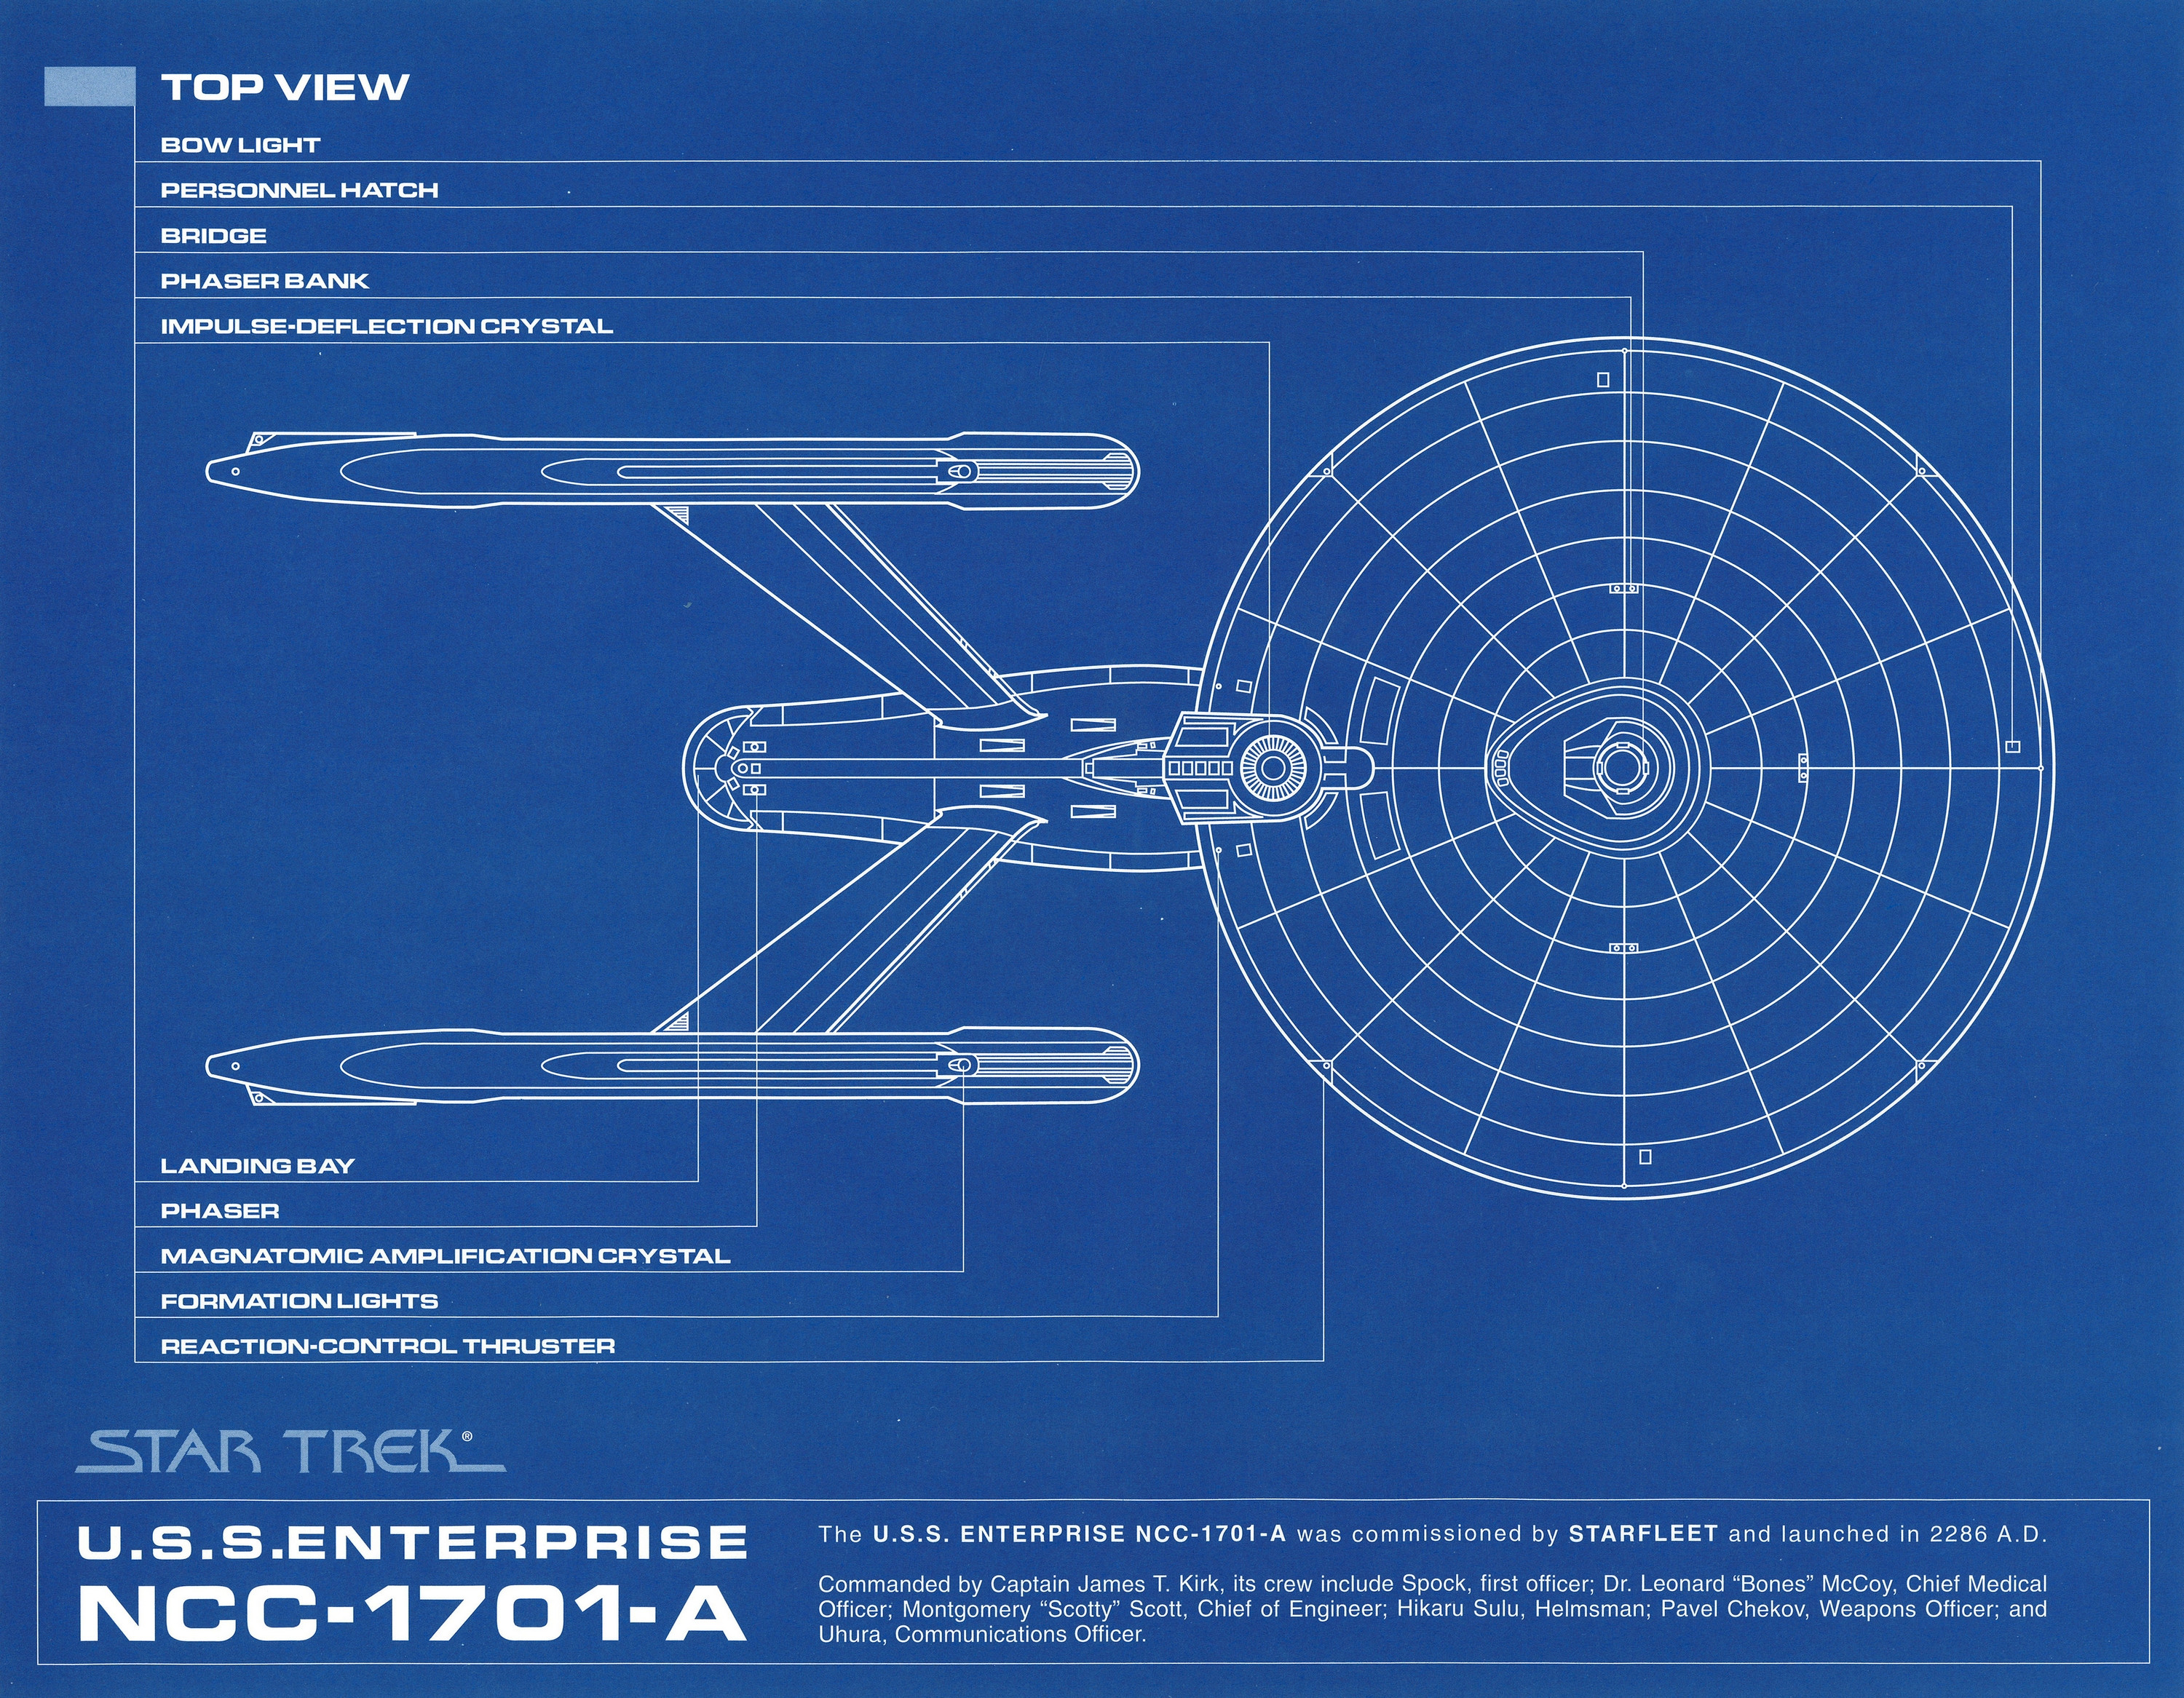 Star trek uss enterprise a d deep space 9 blueprints for Blueprint software download